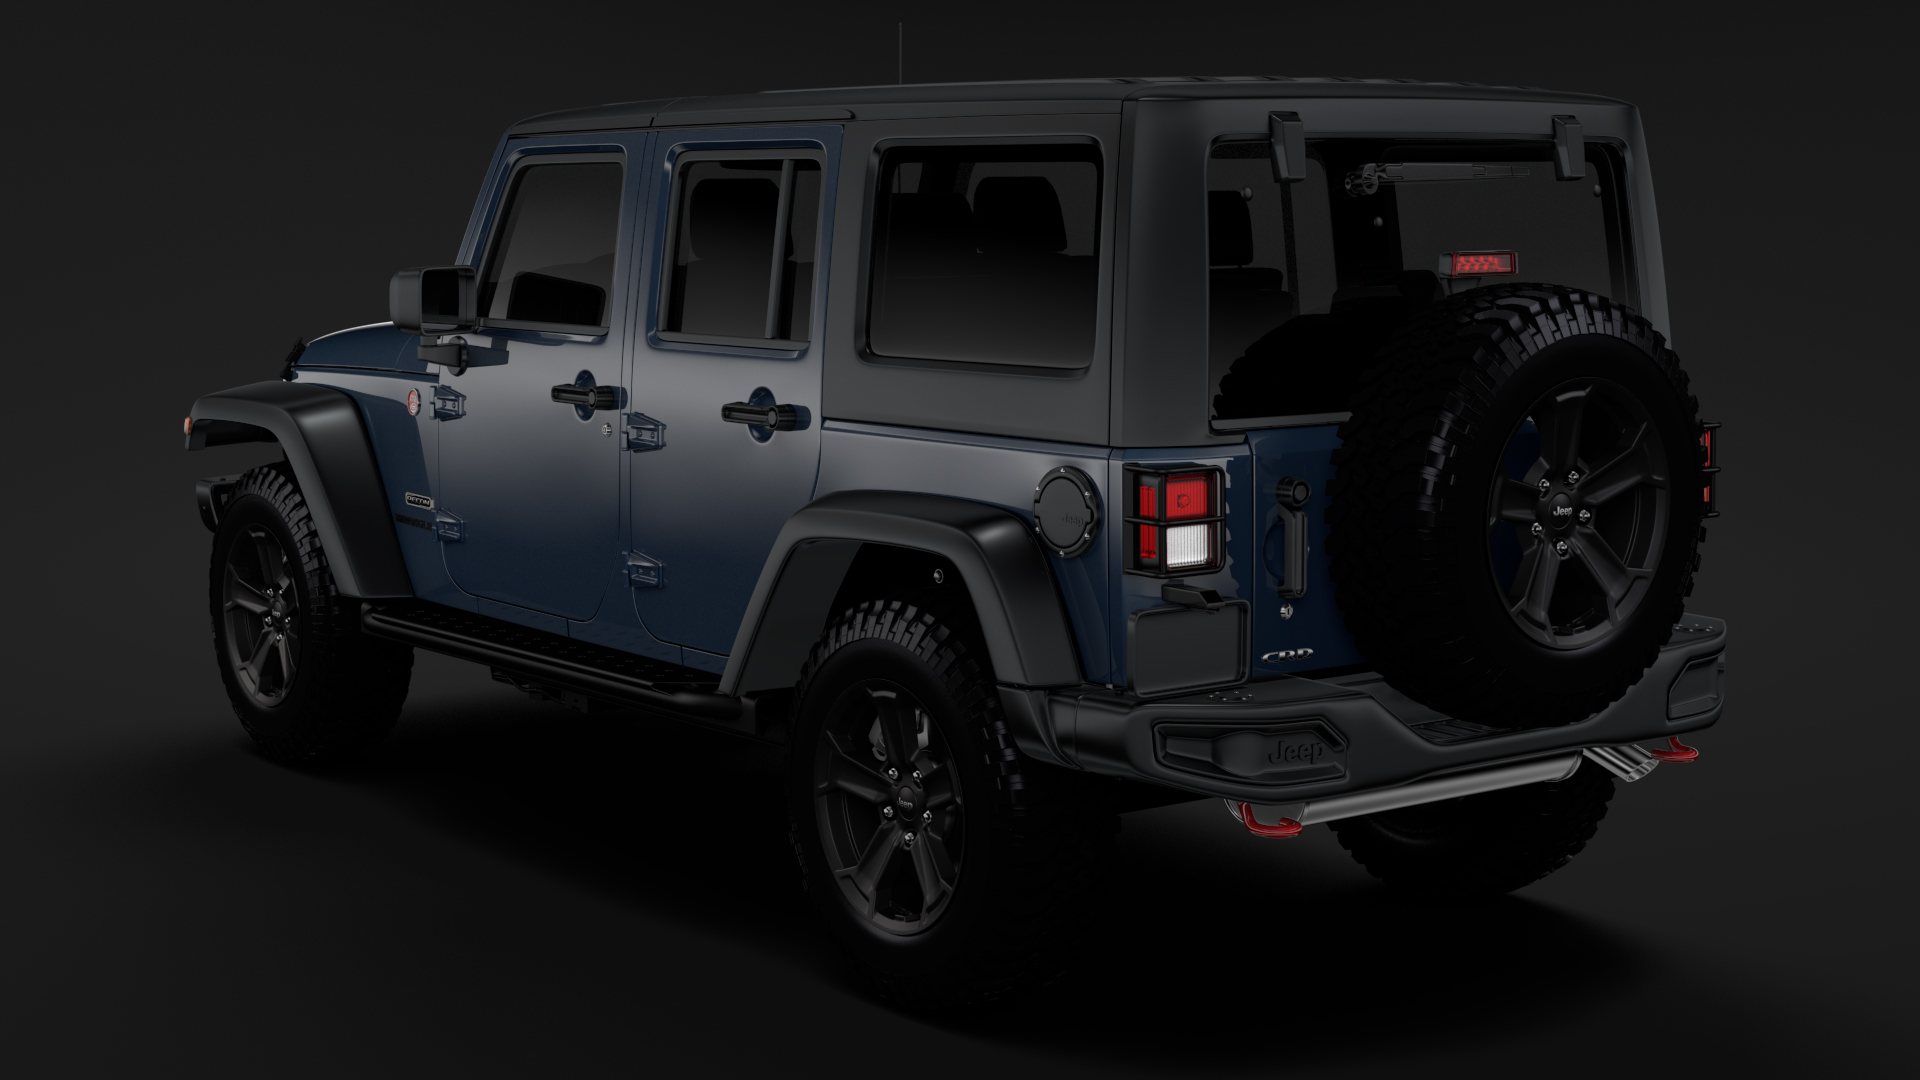 Jeep Wrangler Unlimited Rubicon Recon Jk 2017 3d Model